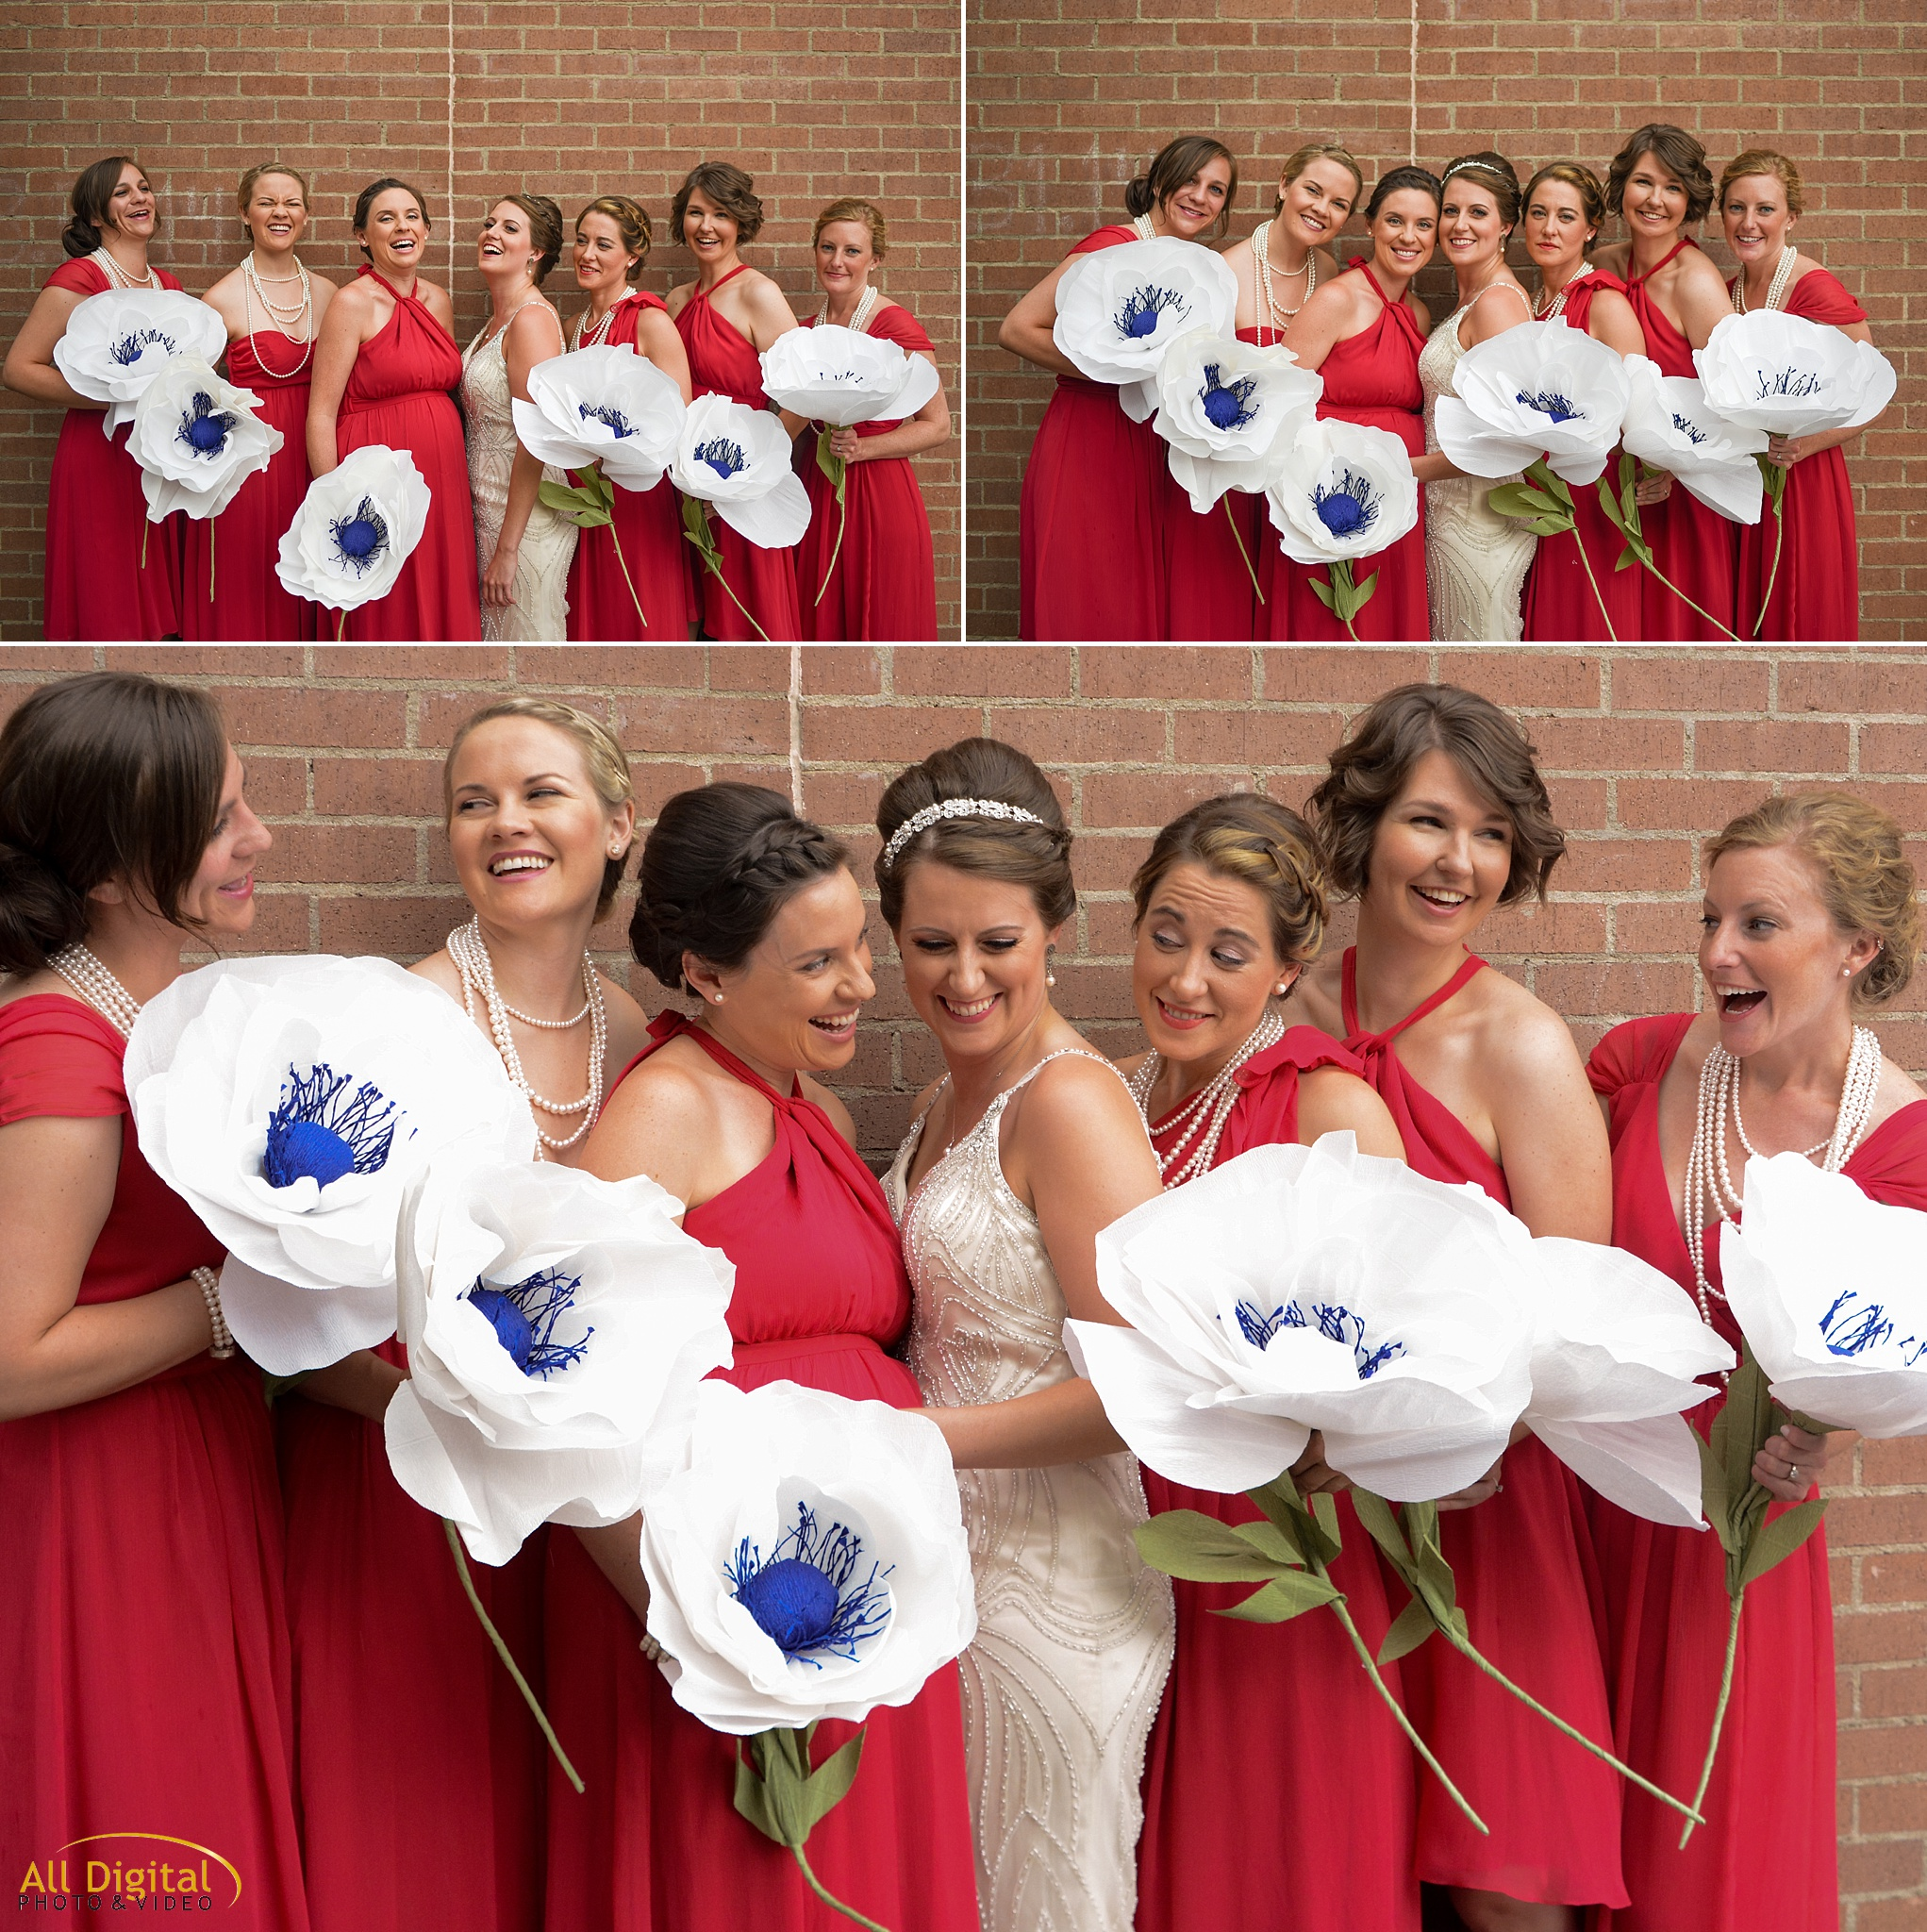 Mary & her Bridesmaids at the Golden Hotel photographed by All Digital Studios.